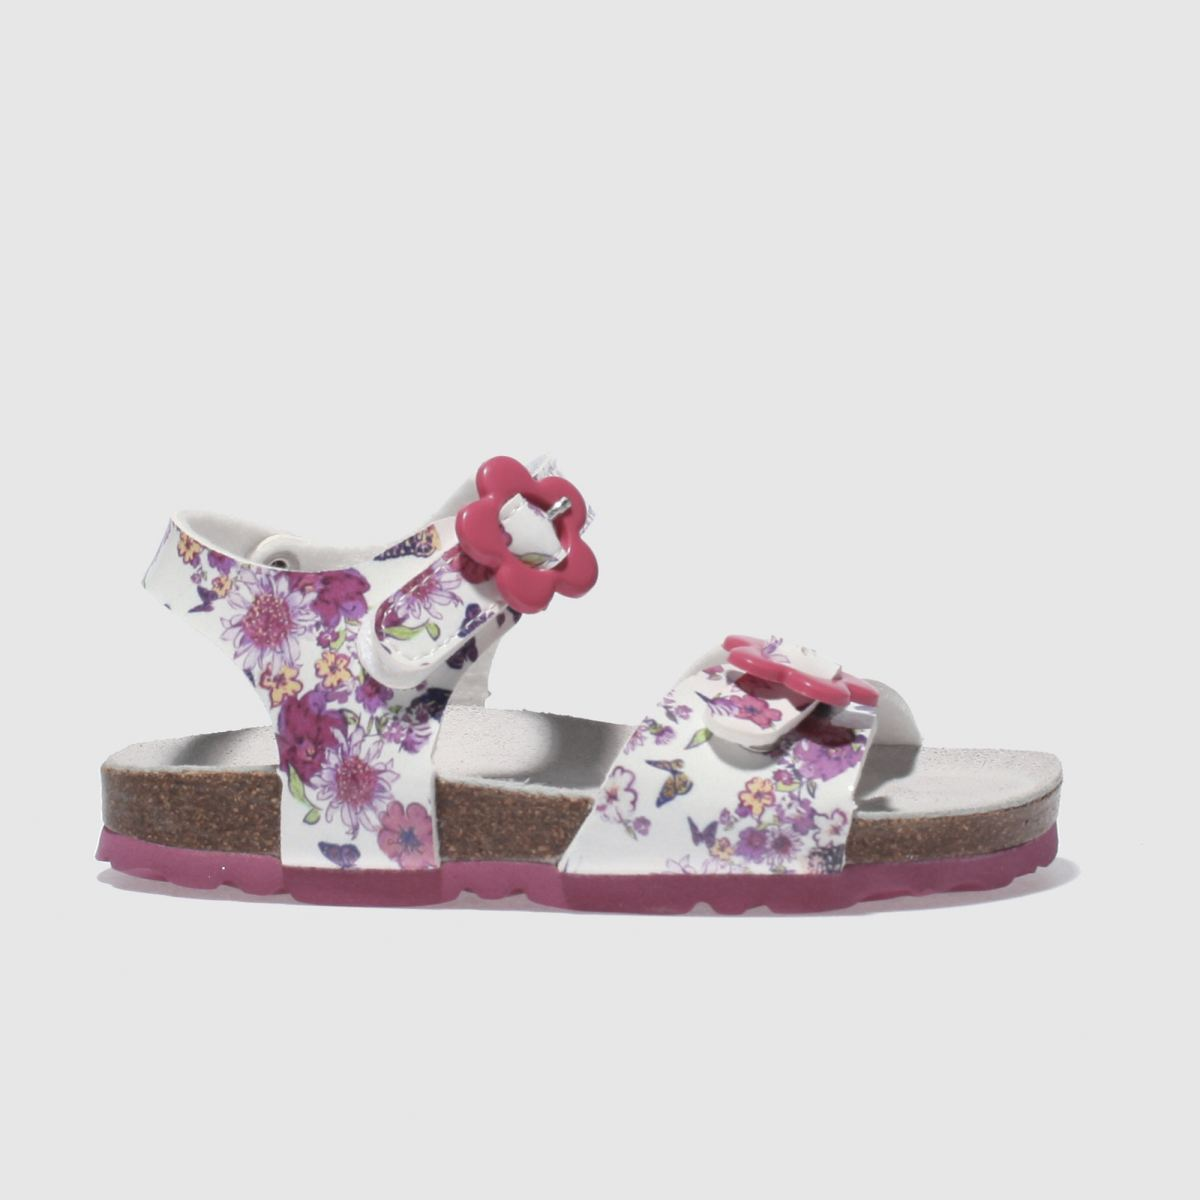 Lelli Kelly Lelli Kelly  White & Pink Sonia Sandal Girls Toddler Sandals